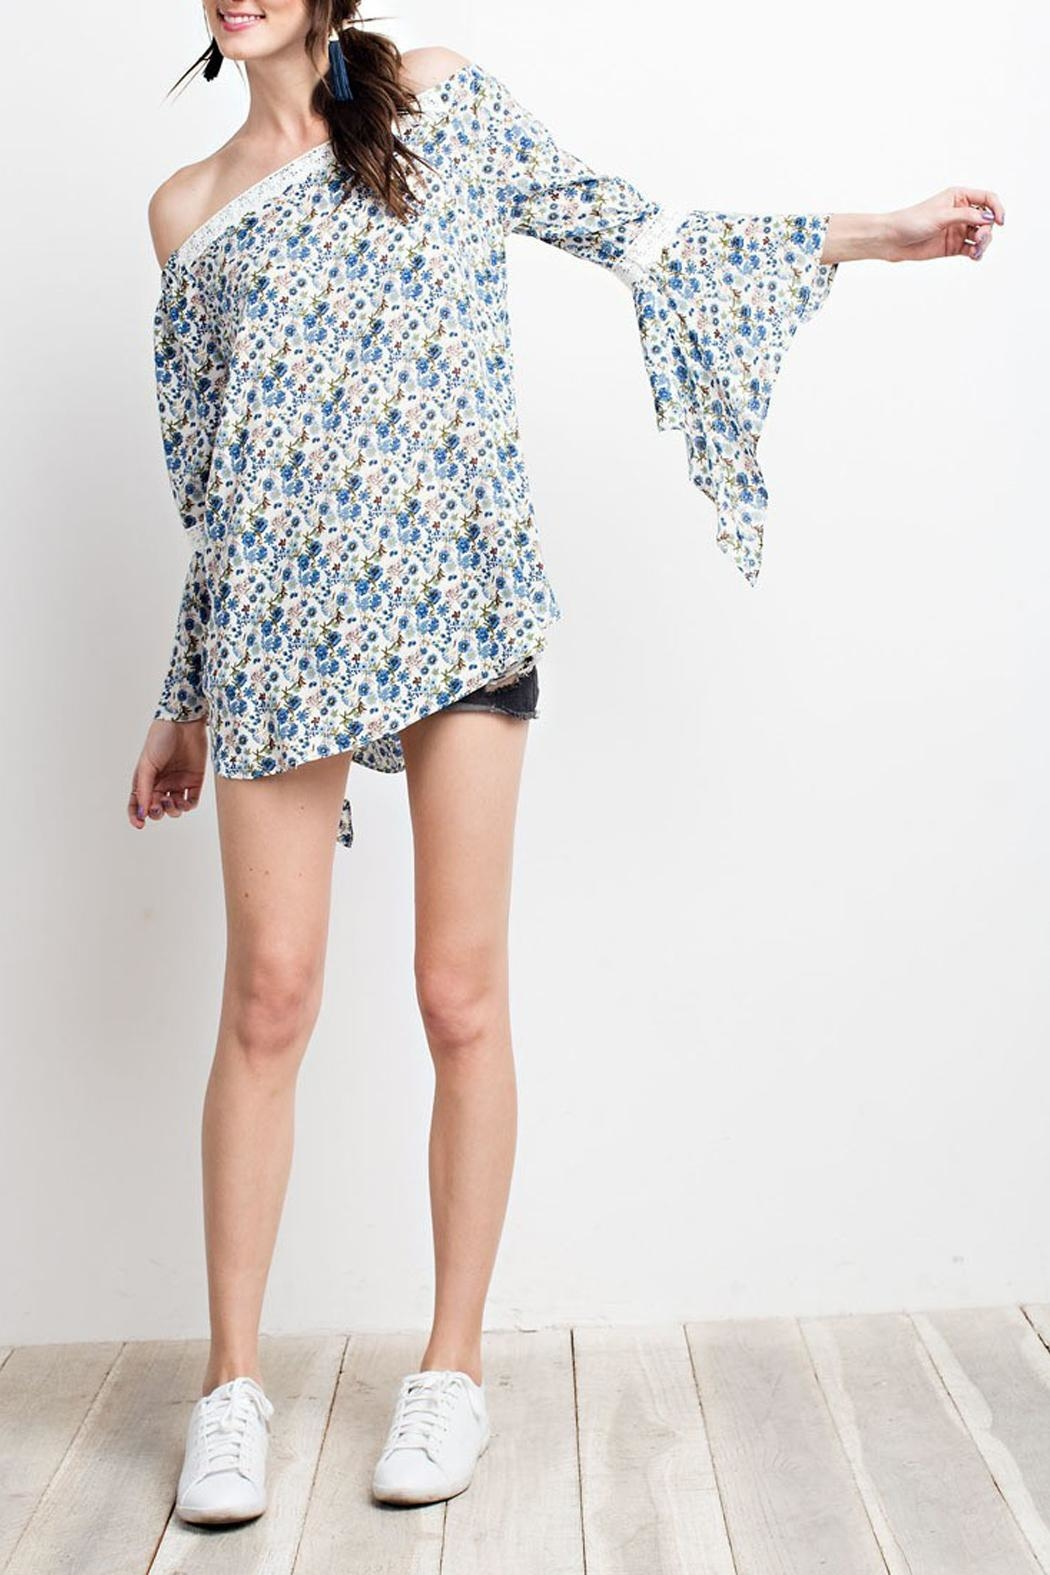 easel Blue-Floral-Print Off-Shoulder Blouse - Main Image